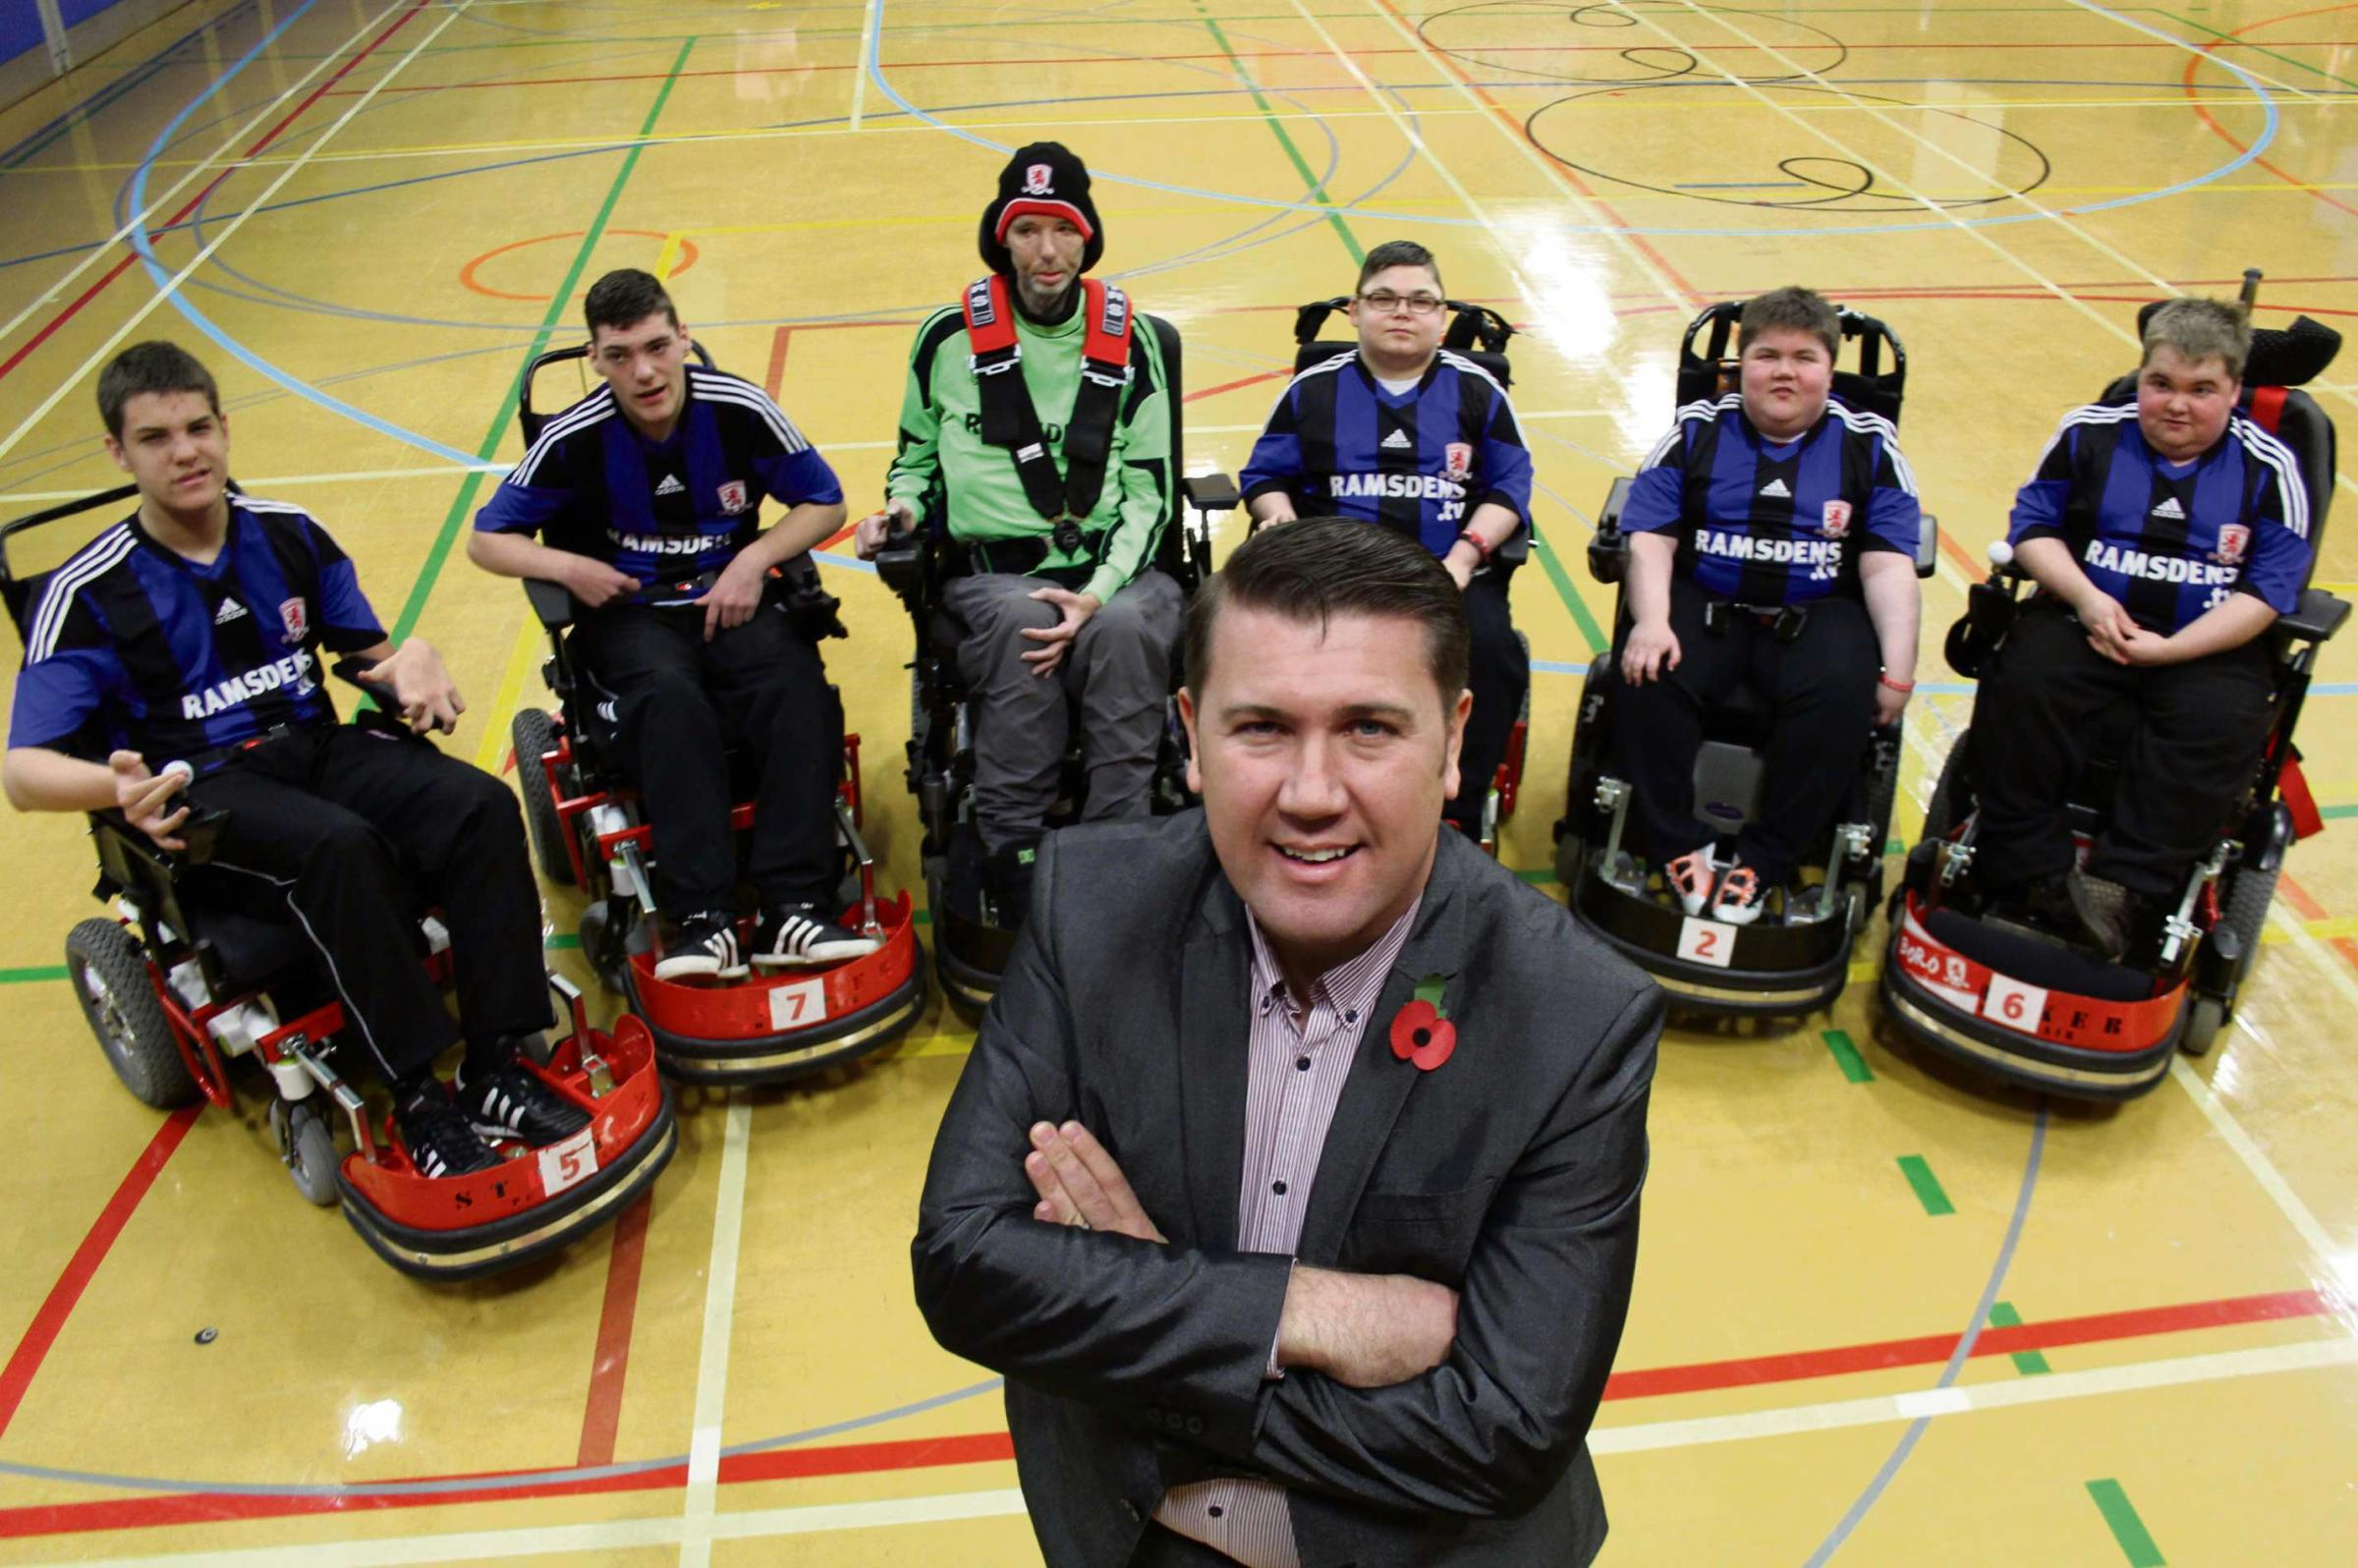 FUNDING GOAL: SiMon Scotchbrook, a patron of Middlesbrough and Teesside Philanthropic Foundation, with members of Middlesbrough Powerchair Football Club, who topped the Goalden Giveaway poll to win £2,500